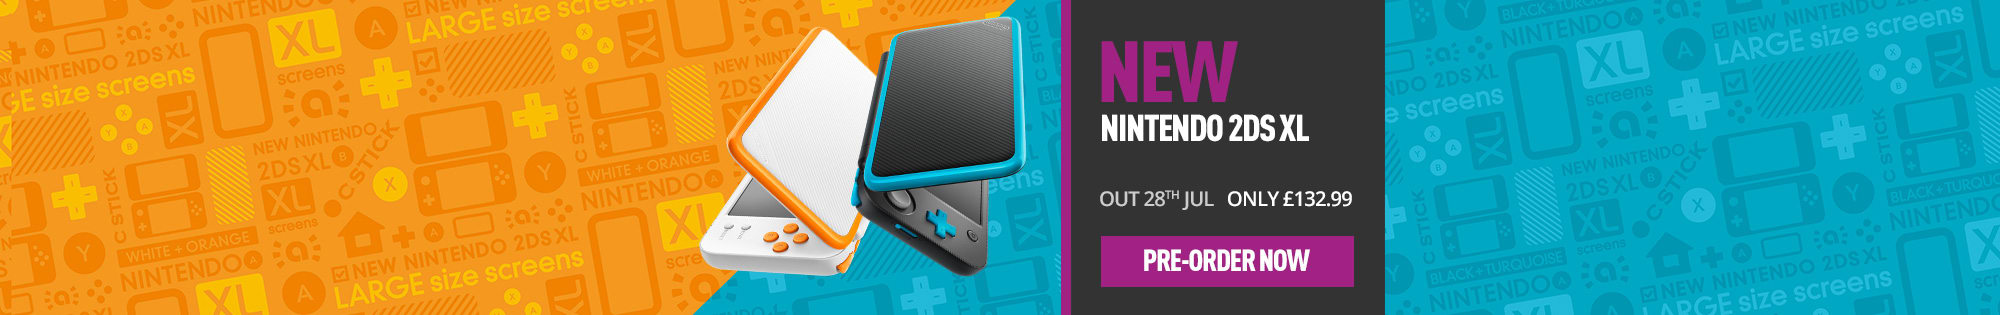 New Nintendo 2DS XL - Homepage Banner